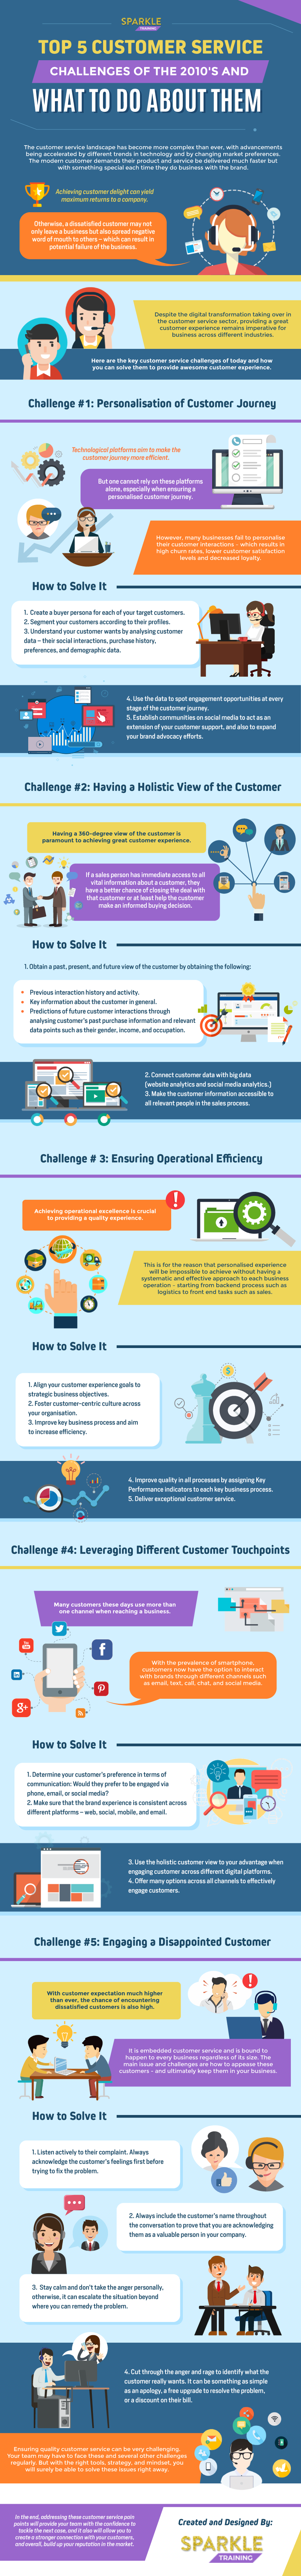 top 5 customer service challenges